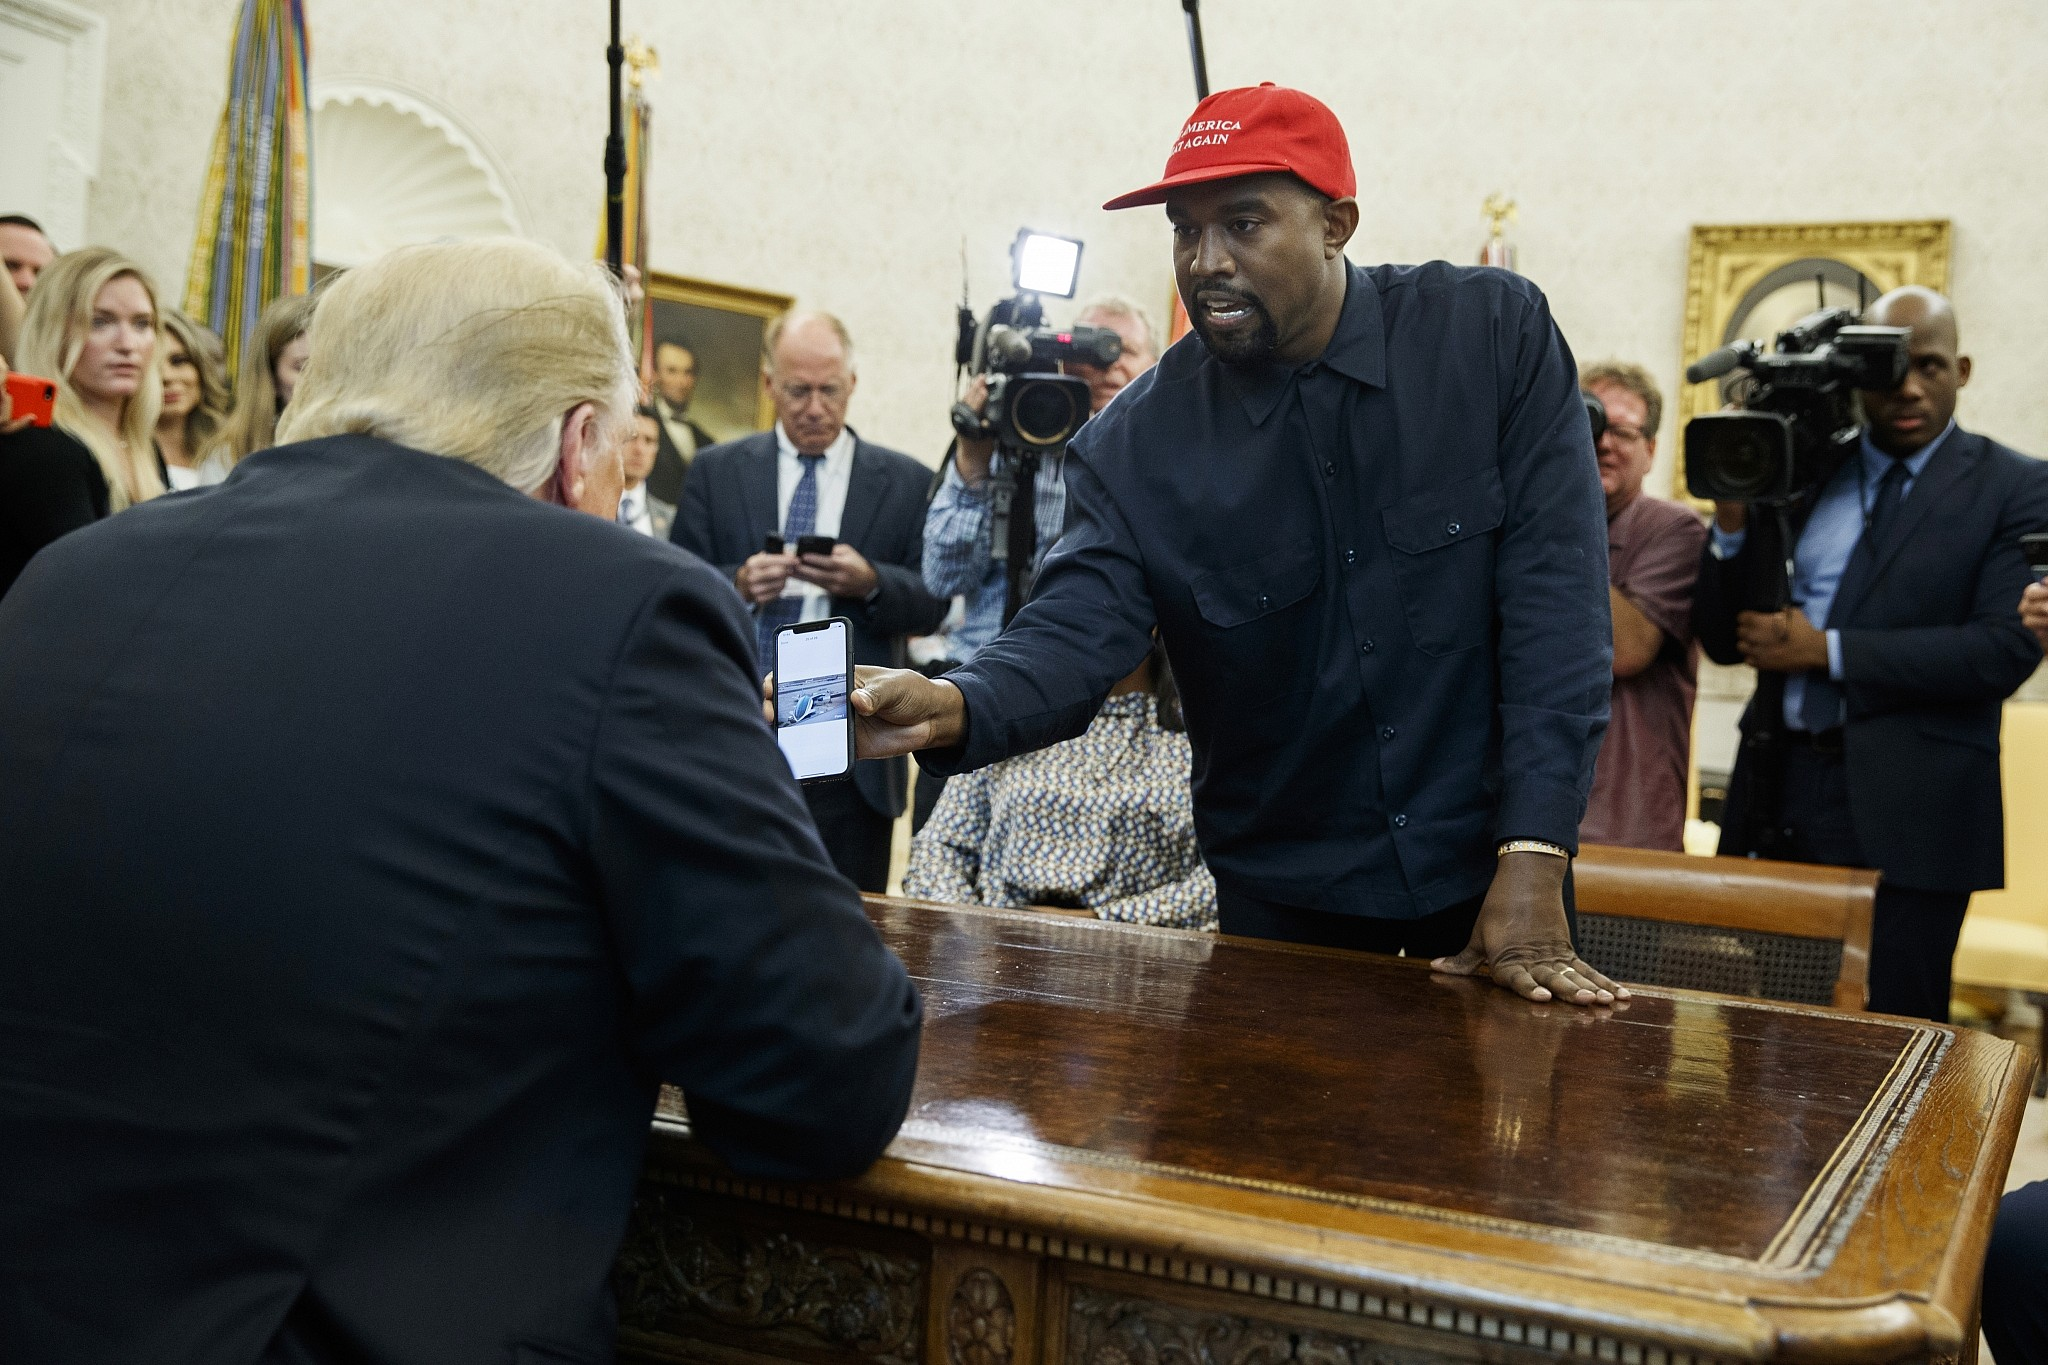 'Saturday Night Live' takes on Trump-Kanye meeting